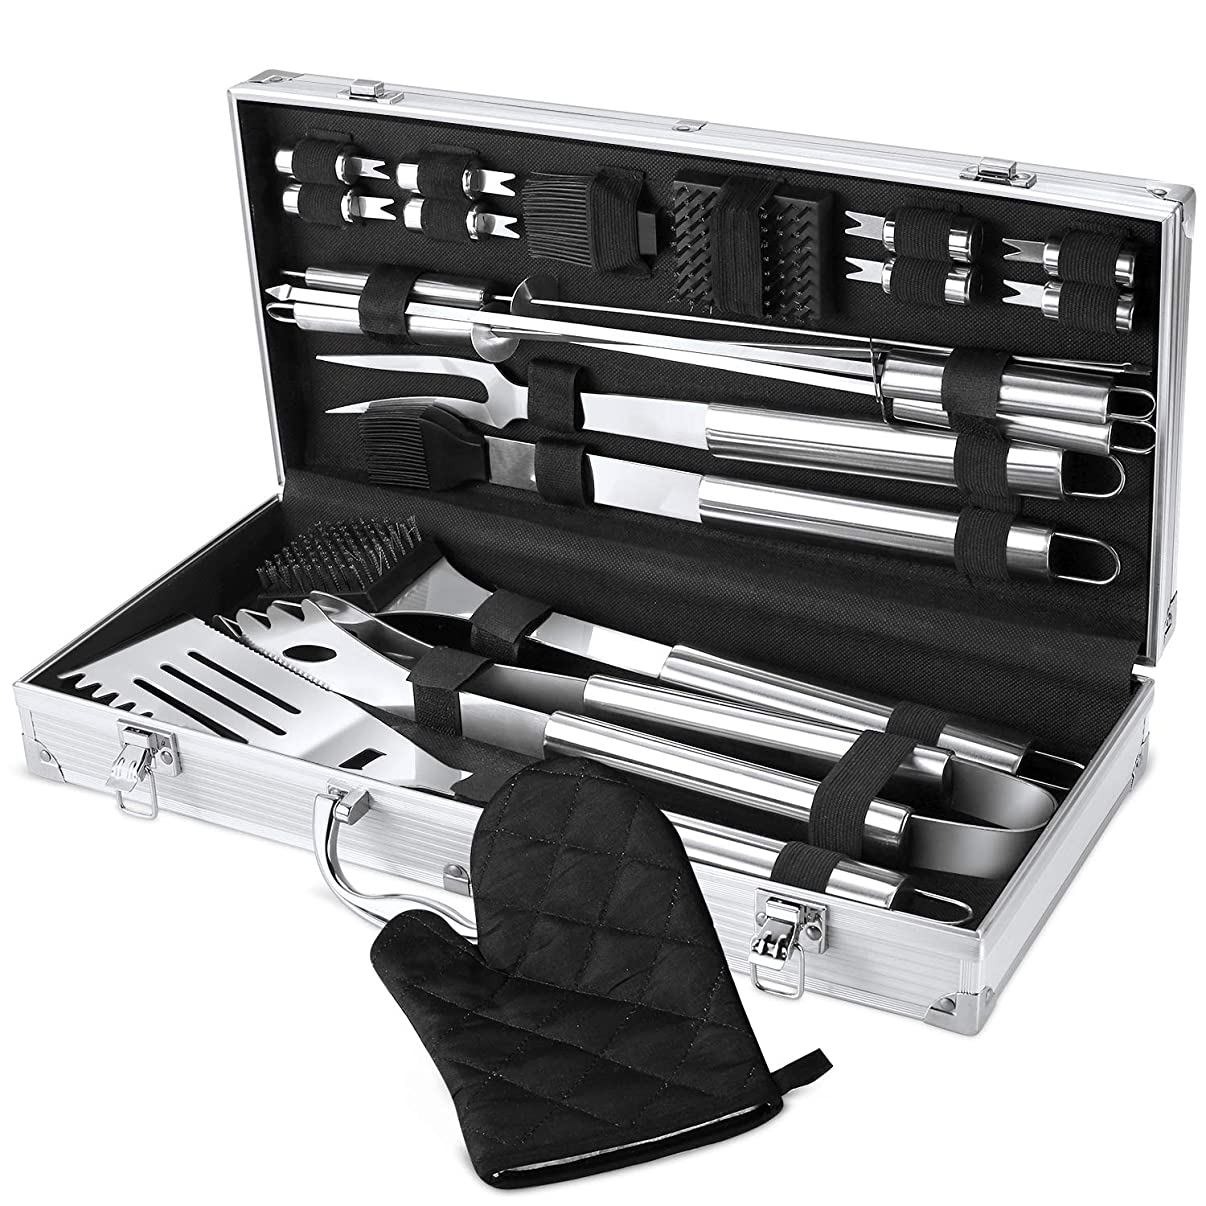 FYLINA BBQ Grill Tool Set, 21-Piece Heavy Duty Stainless Steel Grilling Utensils Tools with Aluminum Storage Case, Premium Grilling Accessories for Barbecue - Spatula, Tongs, Forks, and Basting Brush